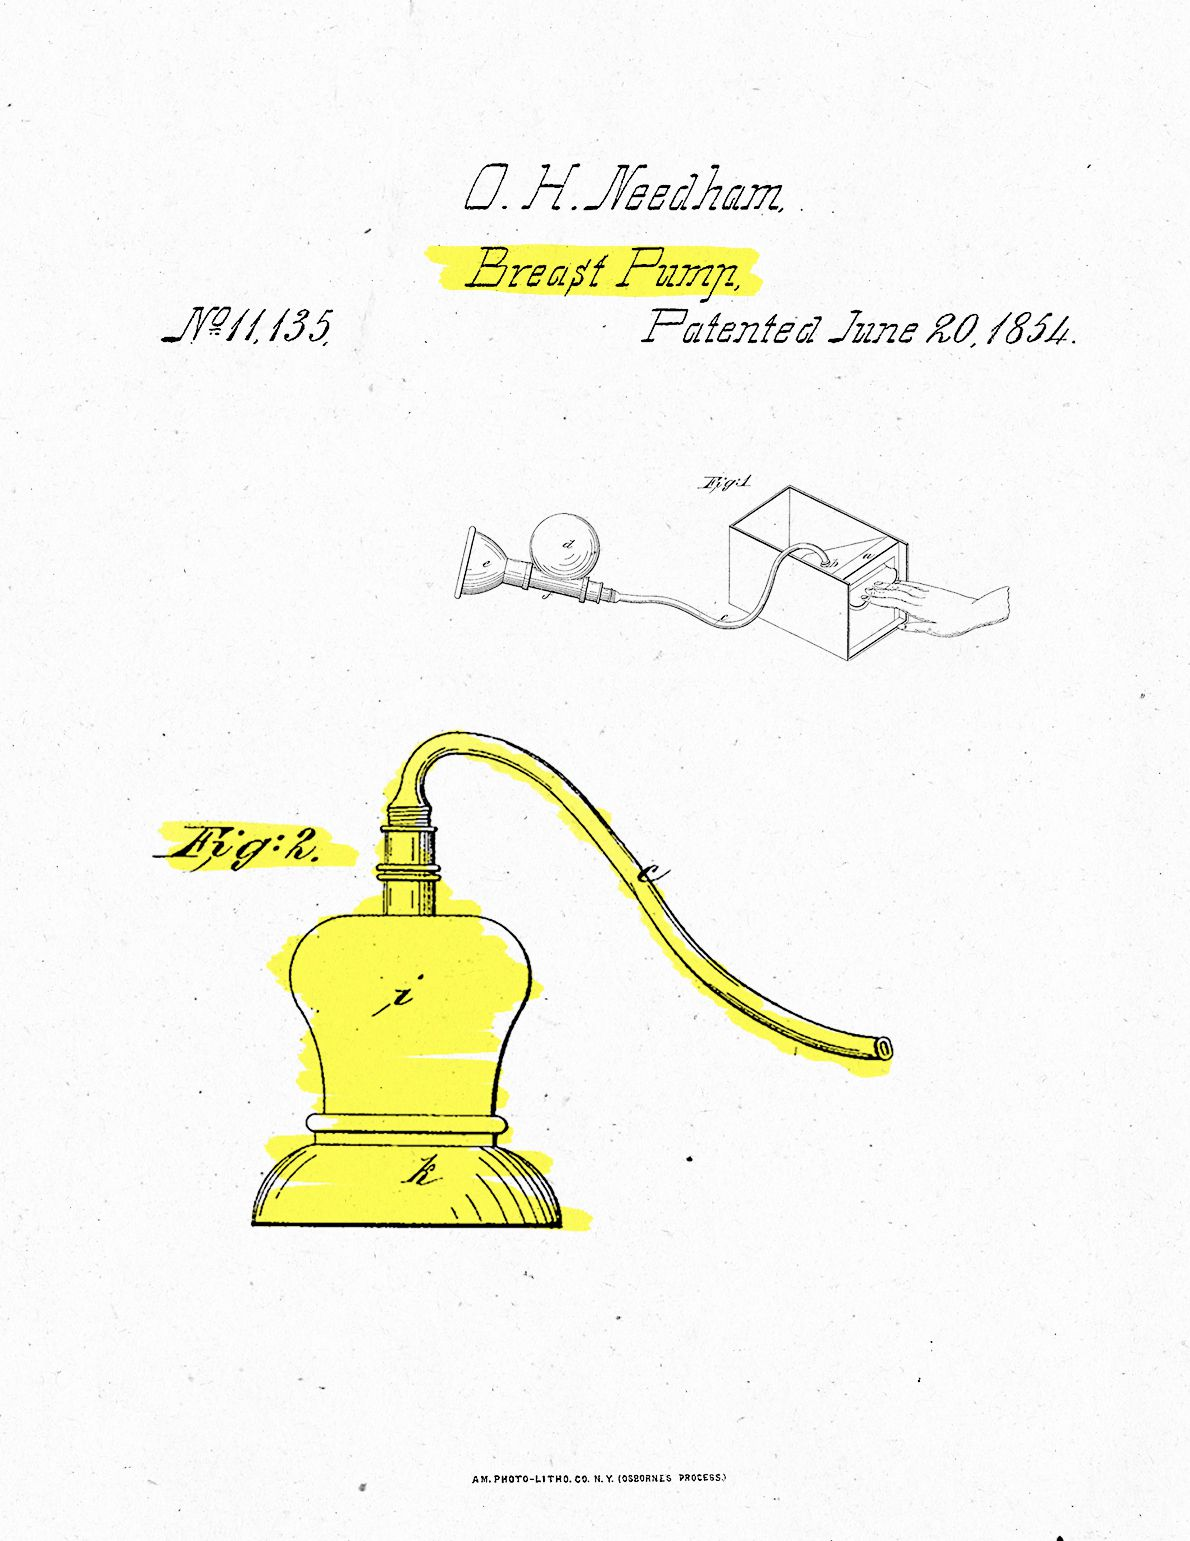 Orwell H. Needham filed a patent for the first breast pump in 1854. It closely mimicked similar products used to milk animals.